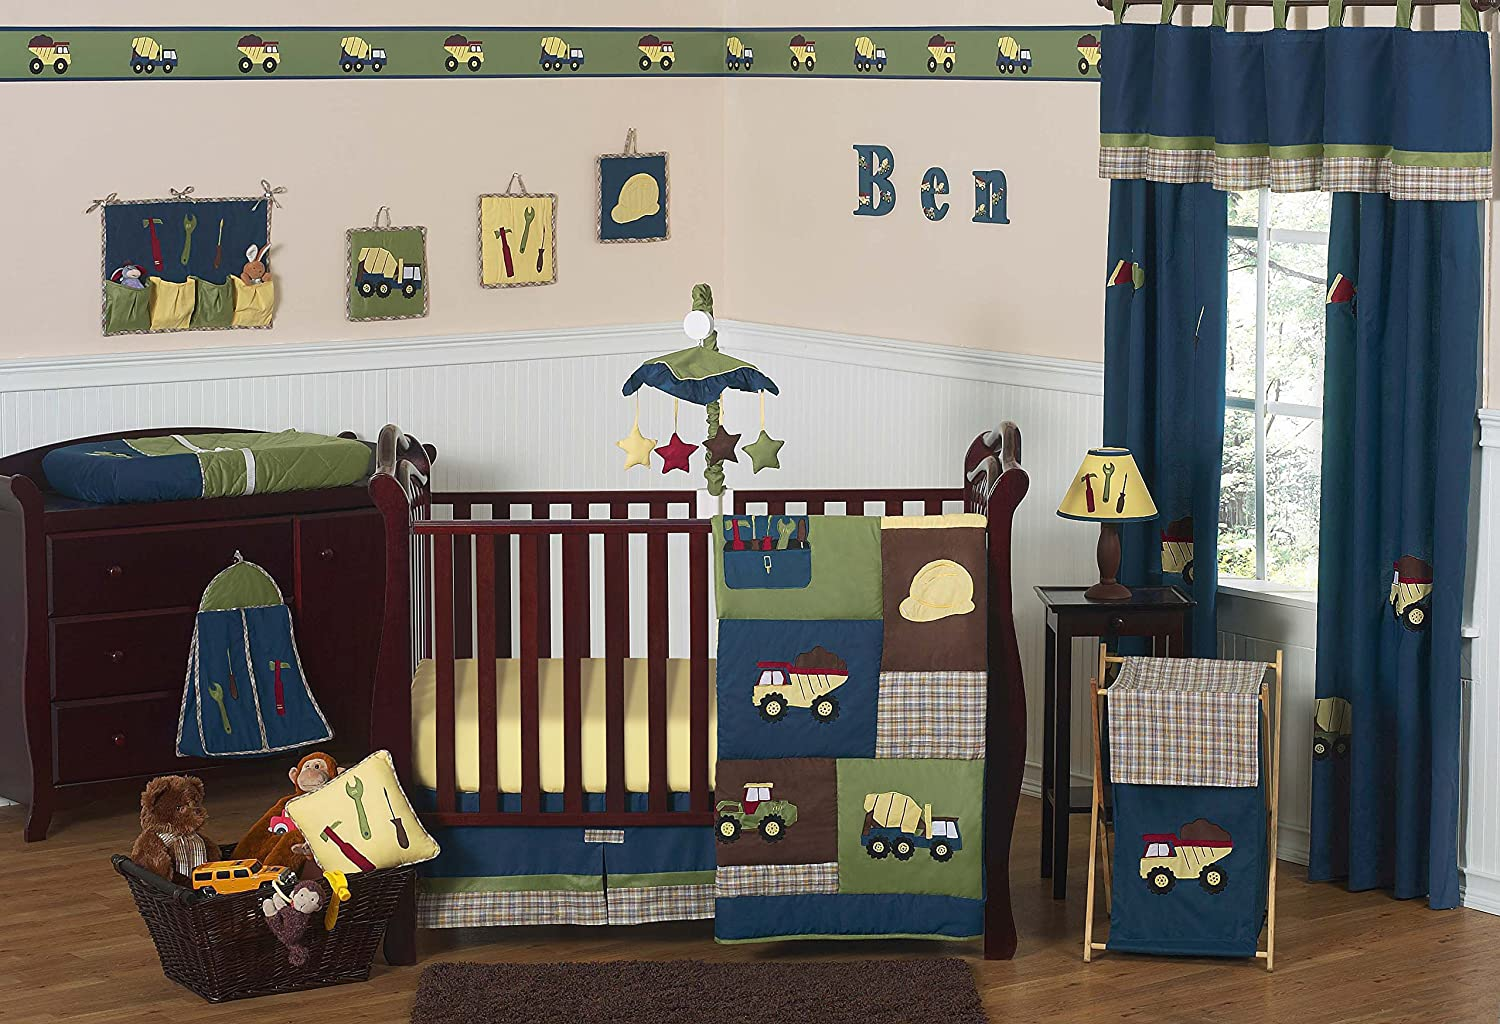 Sweet jojo designs construction zone lamp shade free shipping on - Amazon Com Construction Zone Blue Baby Boy Truck Bedding 11pc Crib Set Without Bumper Baby